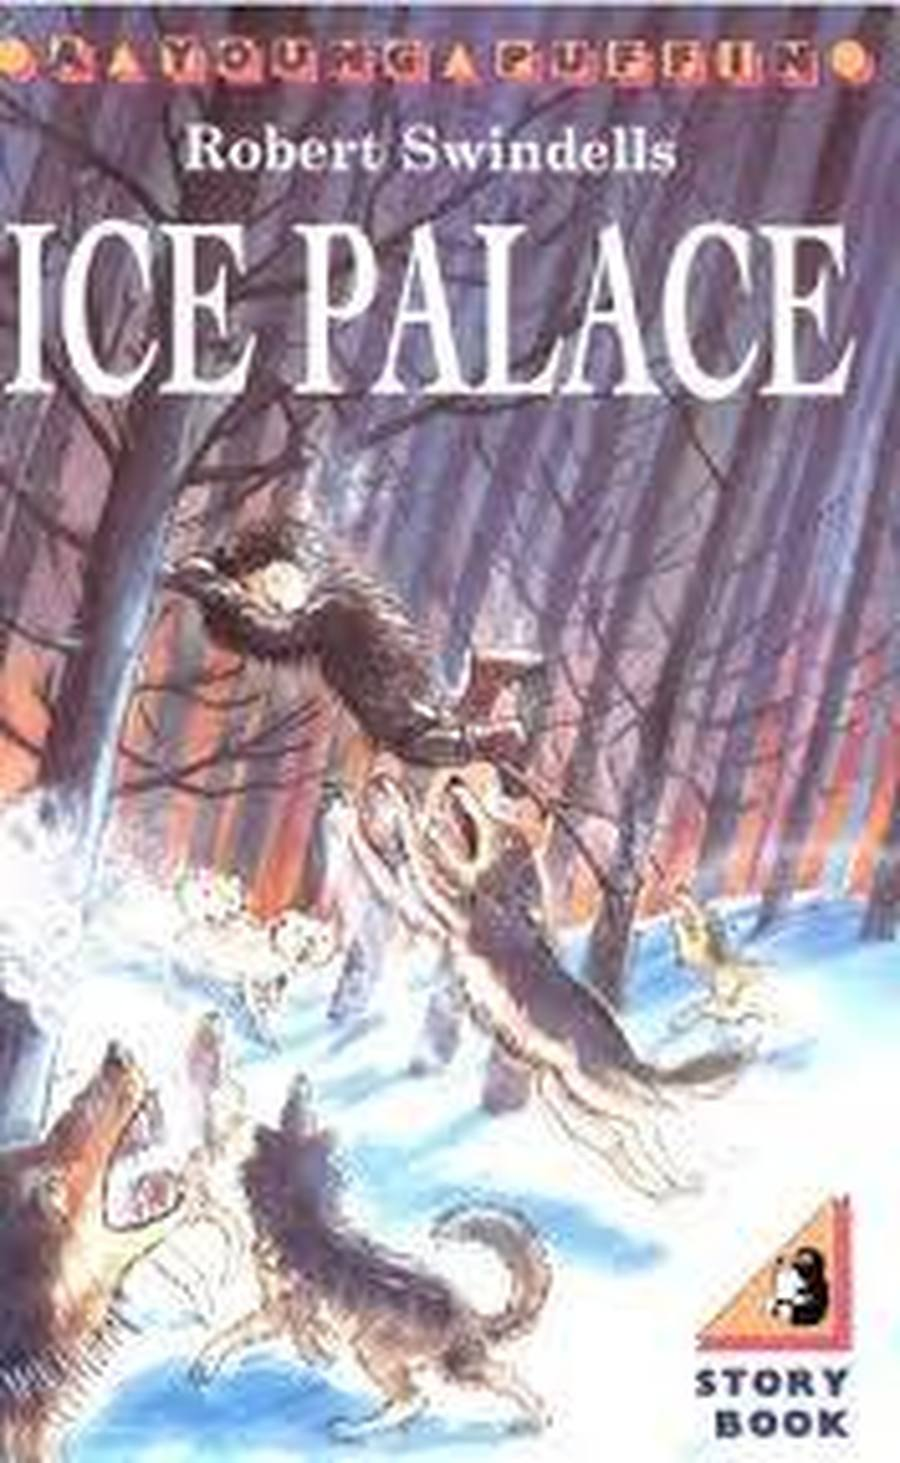 Our Autumn Term novel - Ice Palace by Robert Swindells